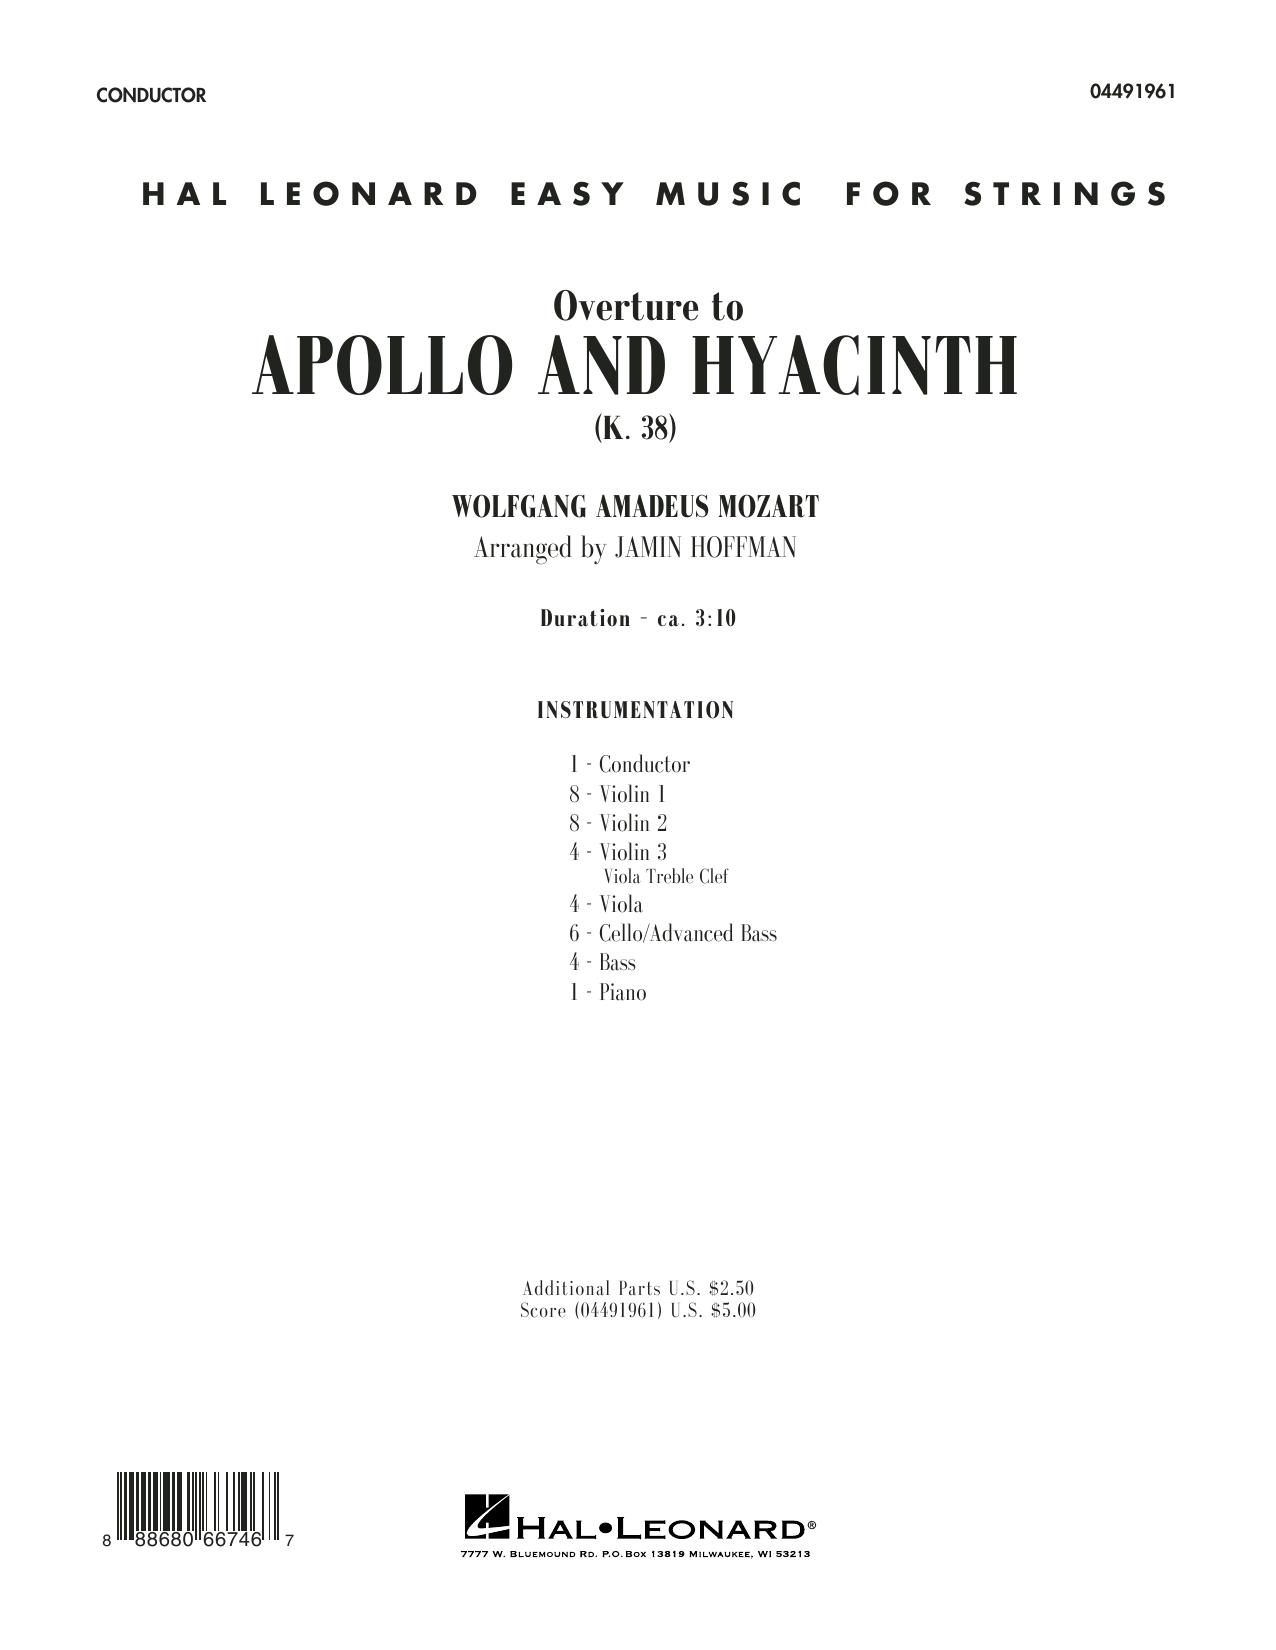 W.A. Mozart - Overture from Apollo and Hyacinth - Conductor Score (Full Score)